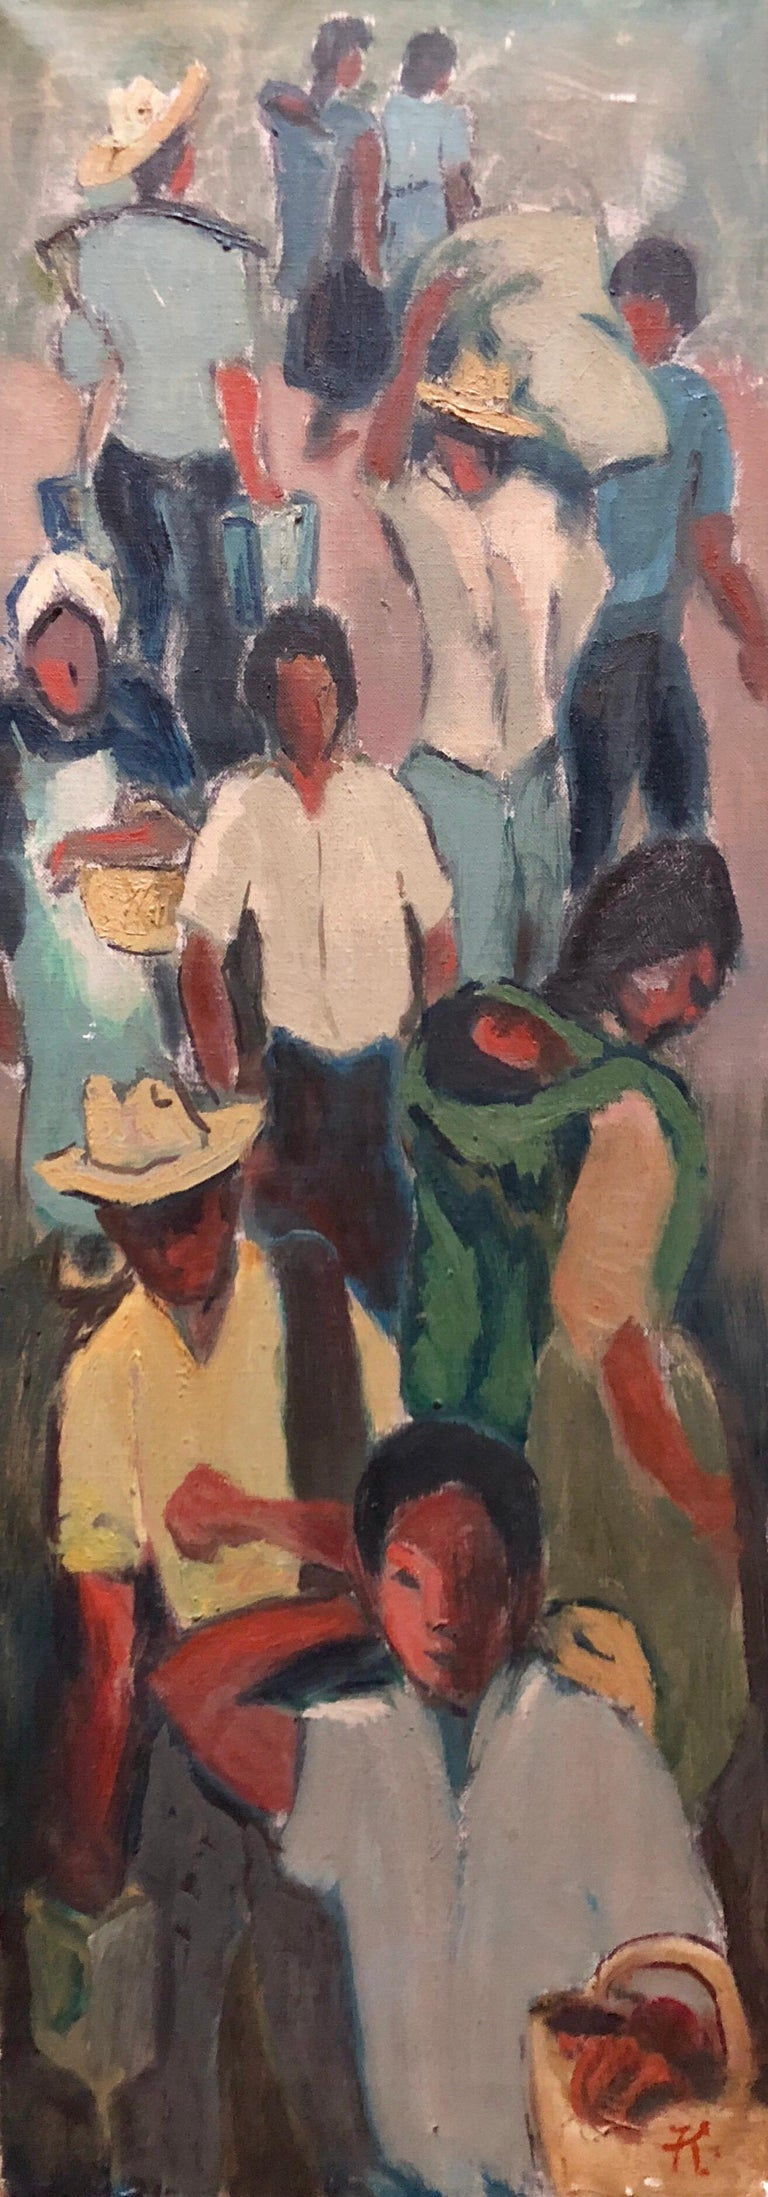 Asian Workers in the Market WPA Style Social Realist Oil Painting - Black Figurative Painting by Unknown